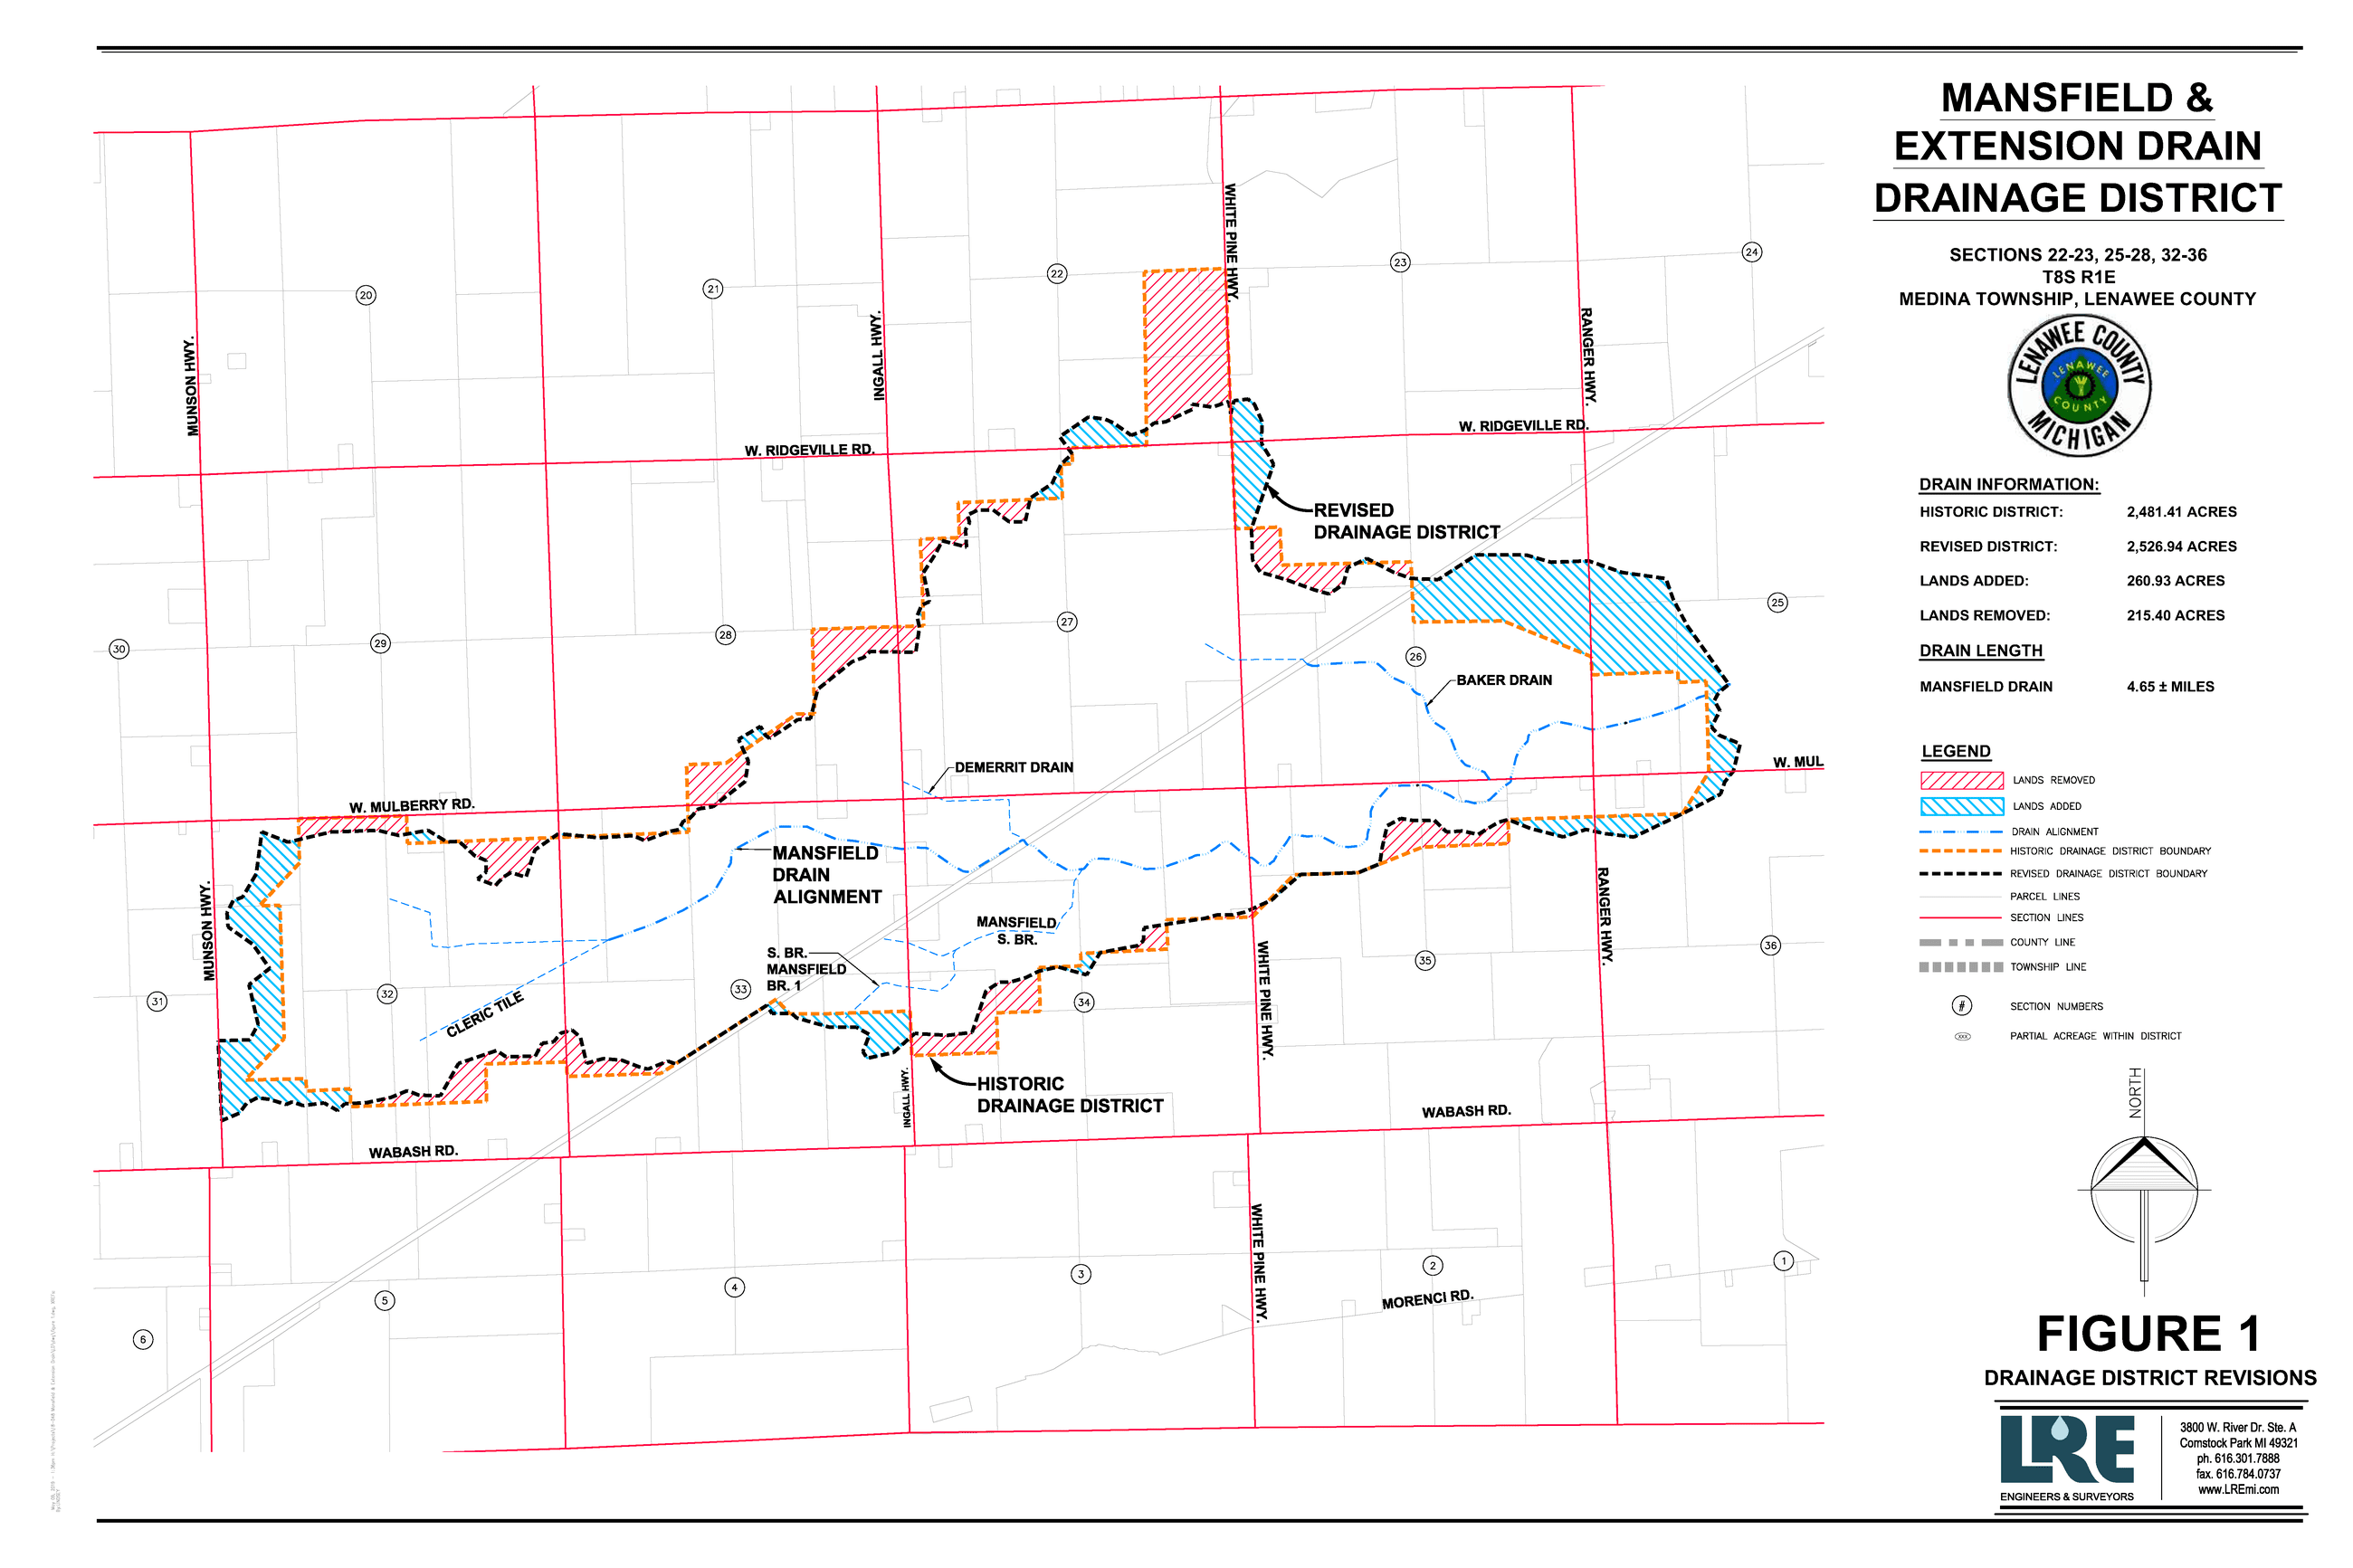 Picture of the revised district for Mansfield & Extension drain